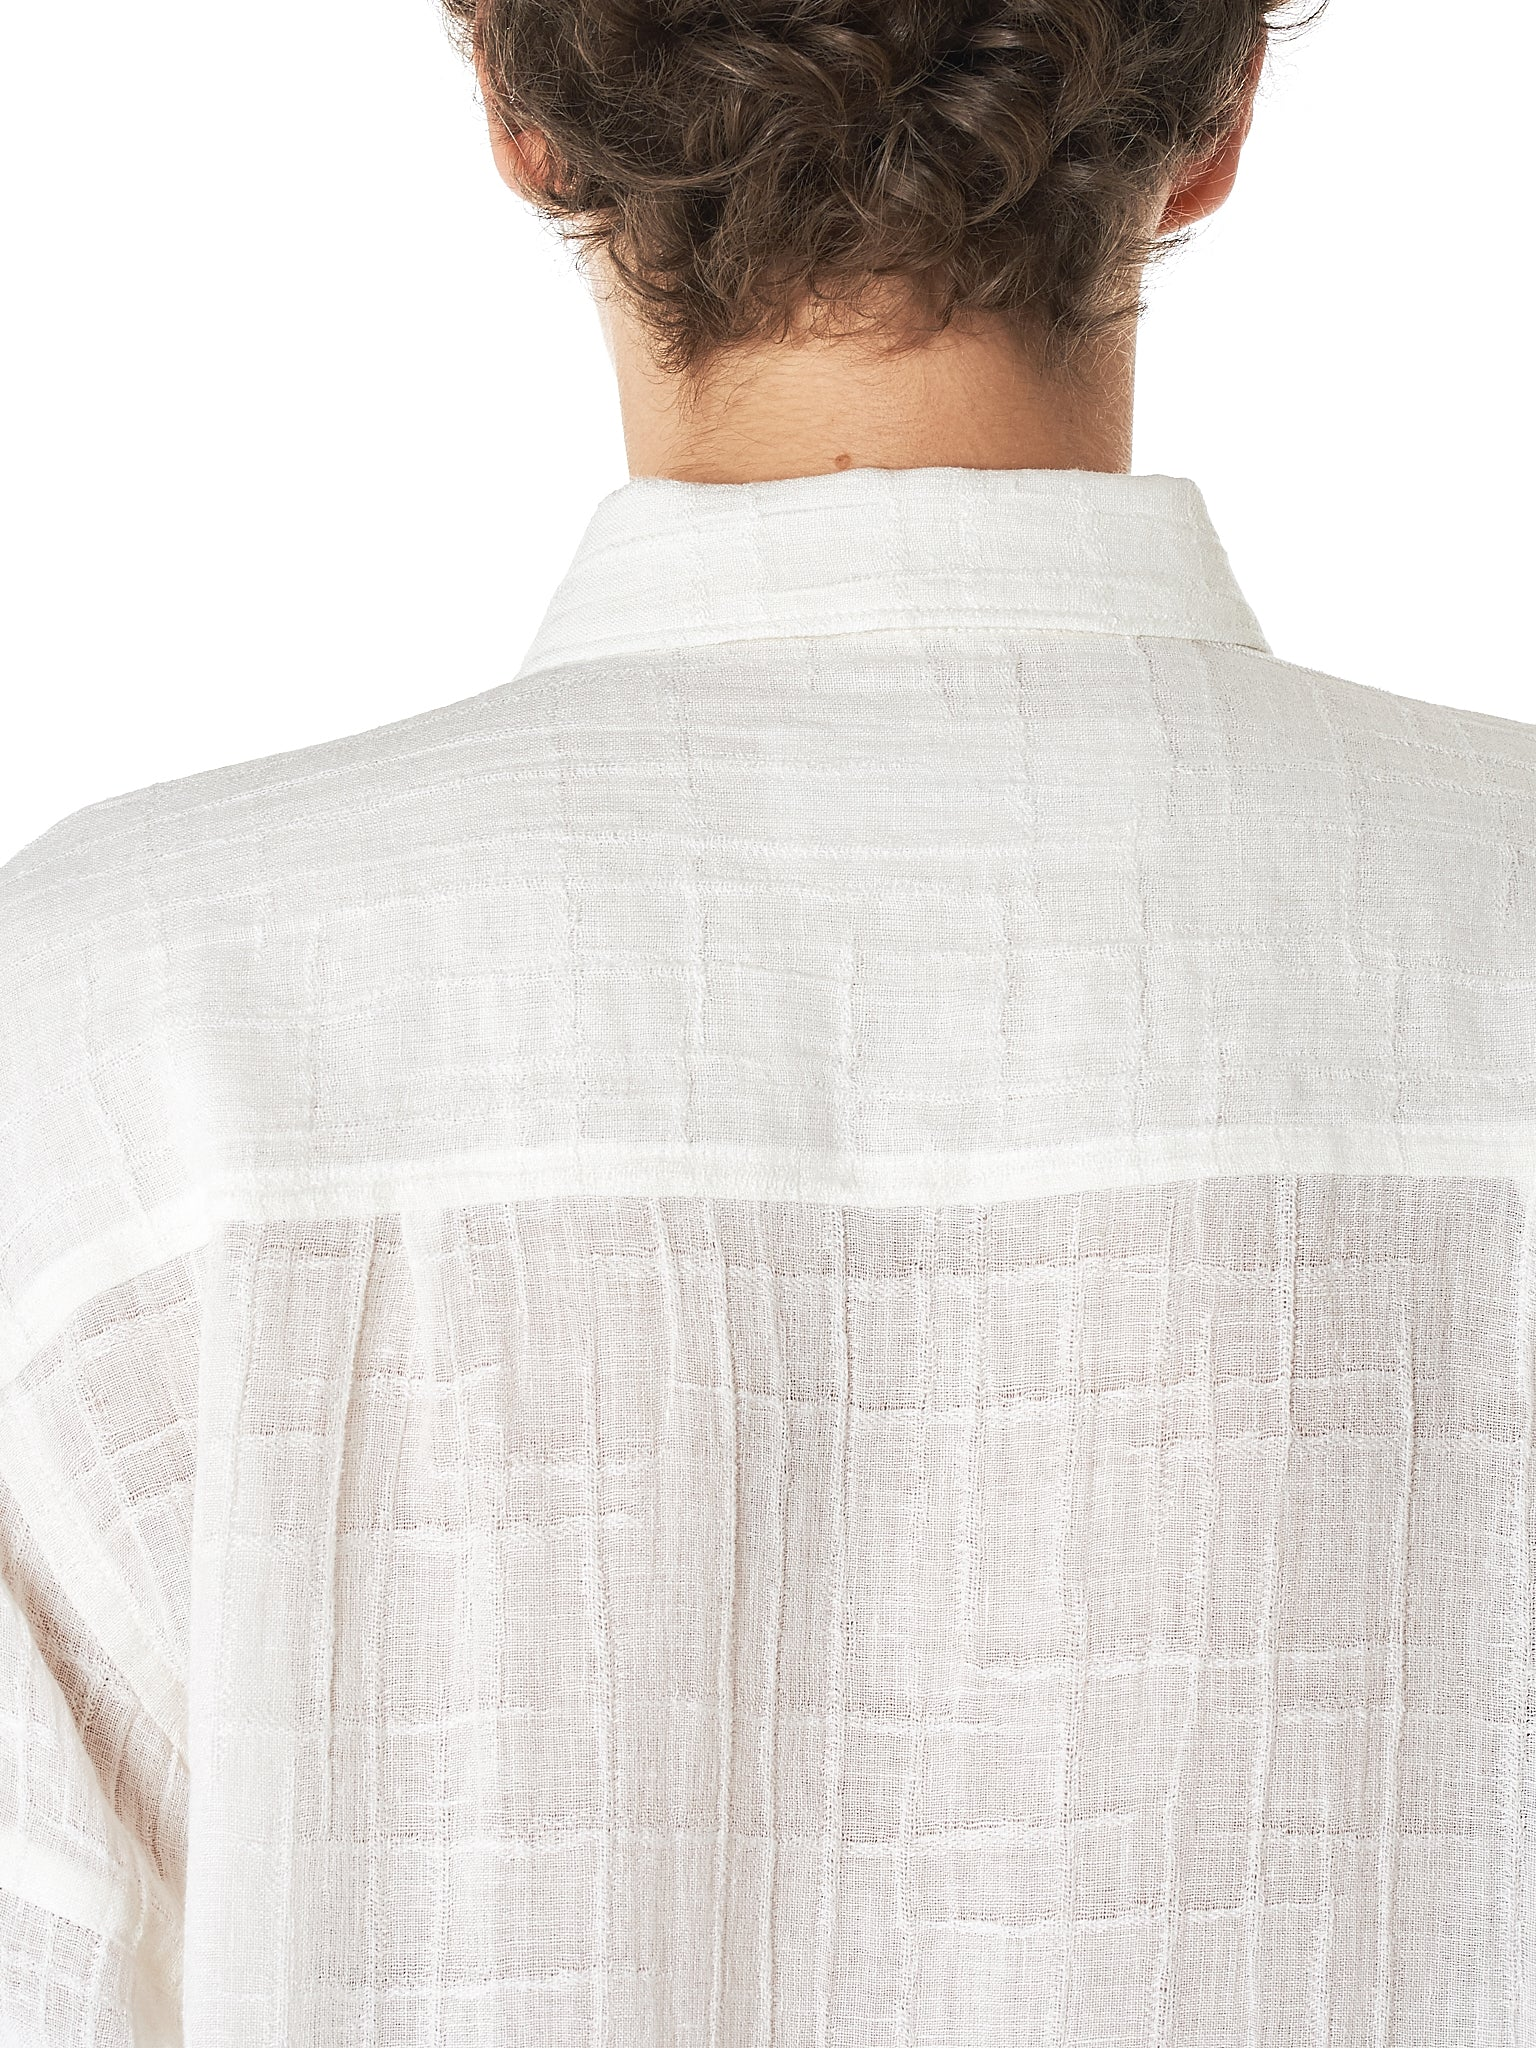 Julien David Shirt - Hlorenzo Detail 2